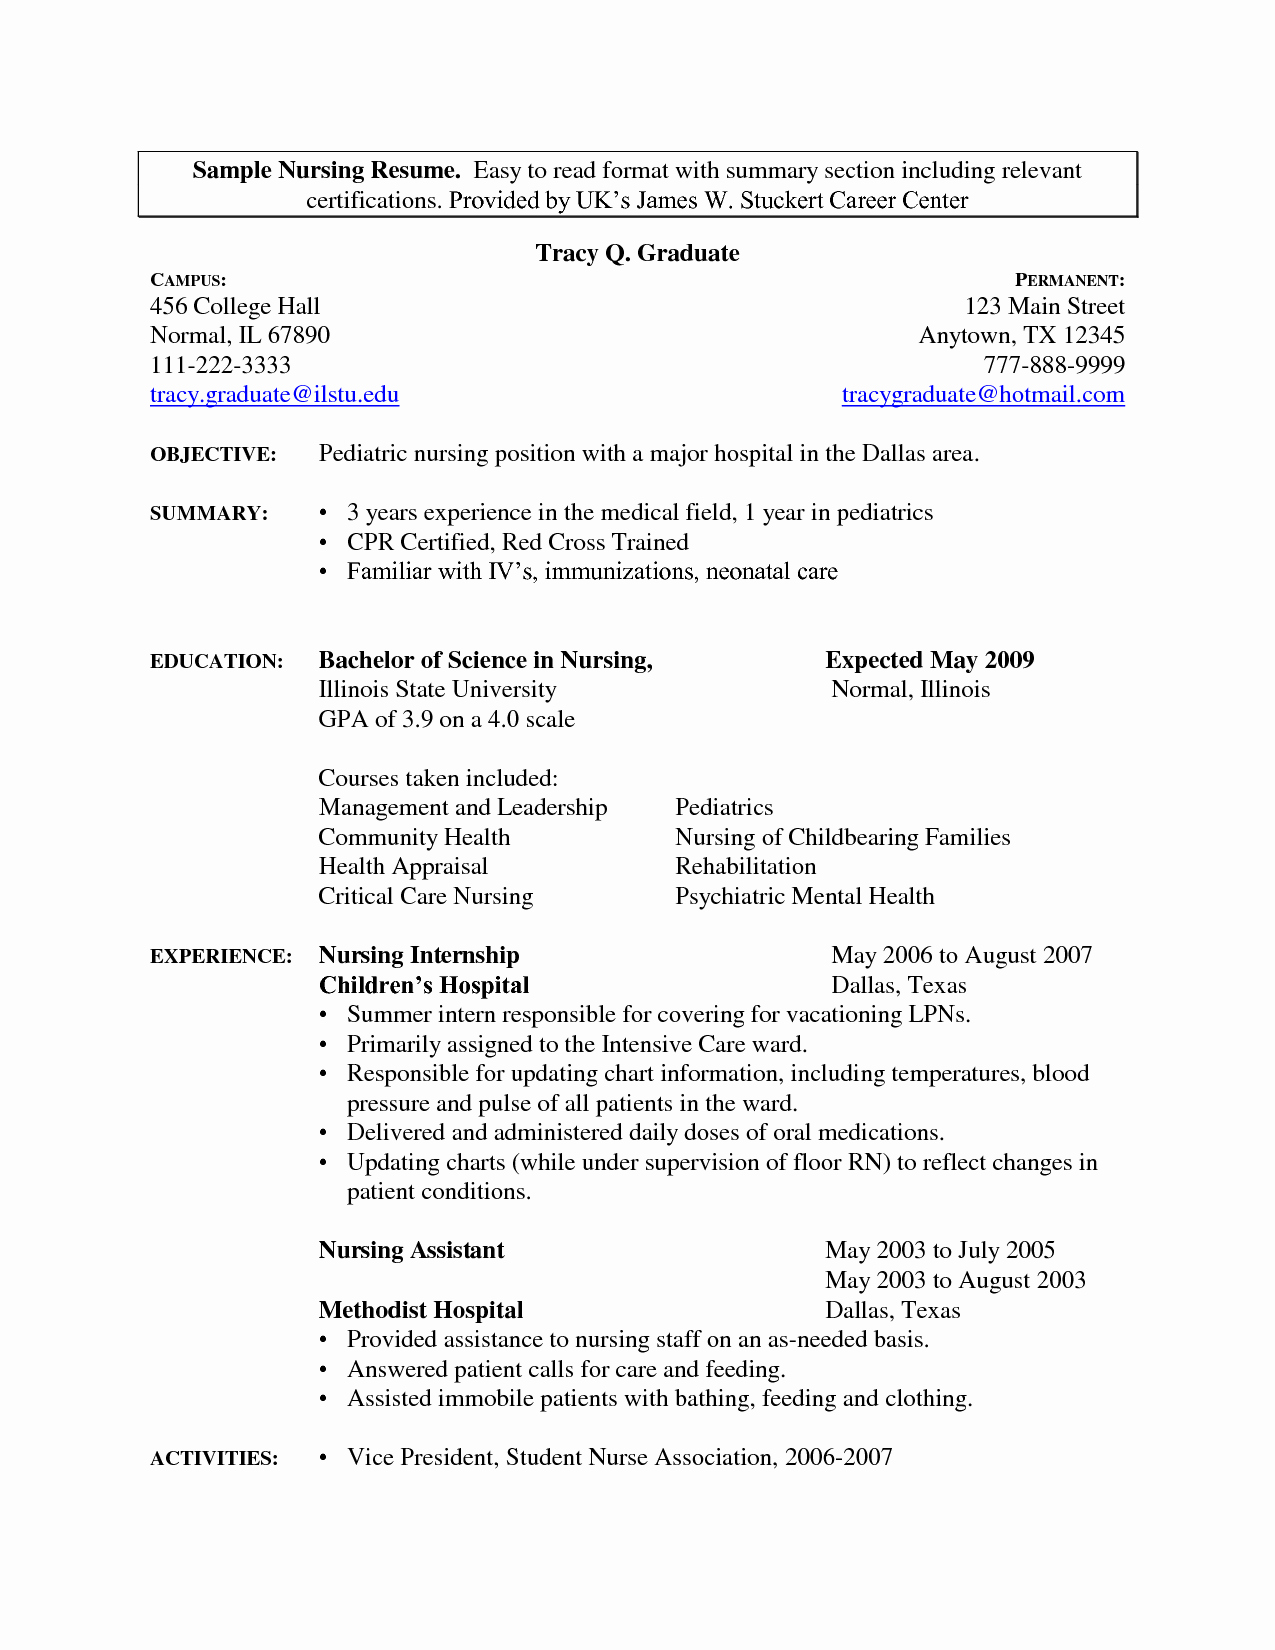 Medical assistant Resume Template New Medical assistant Student Resume Resume Ideas